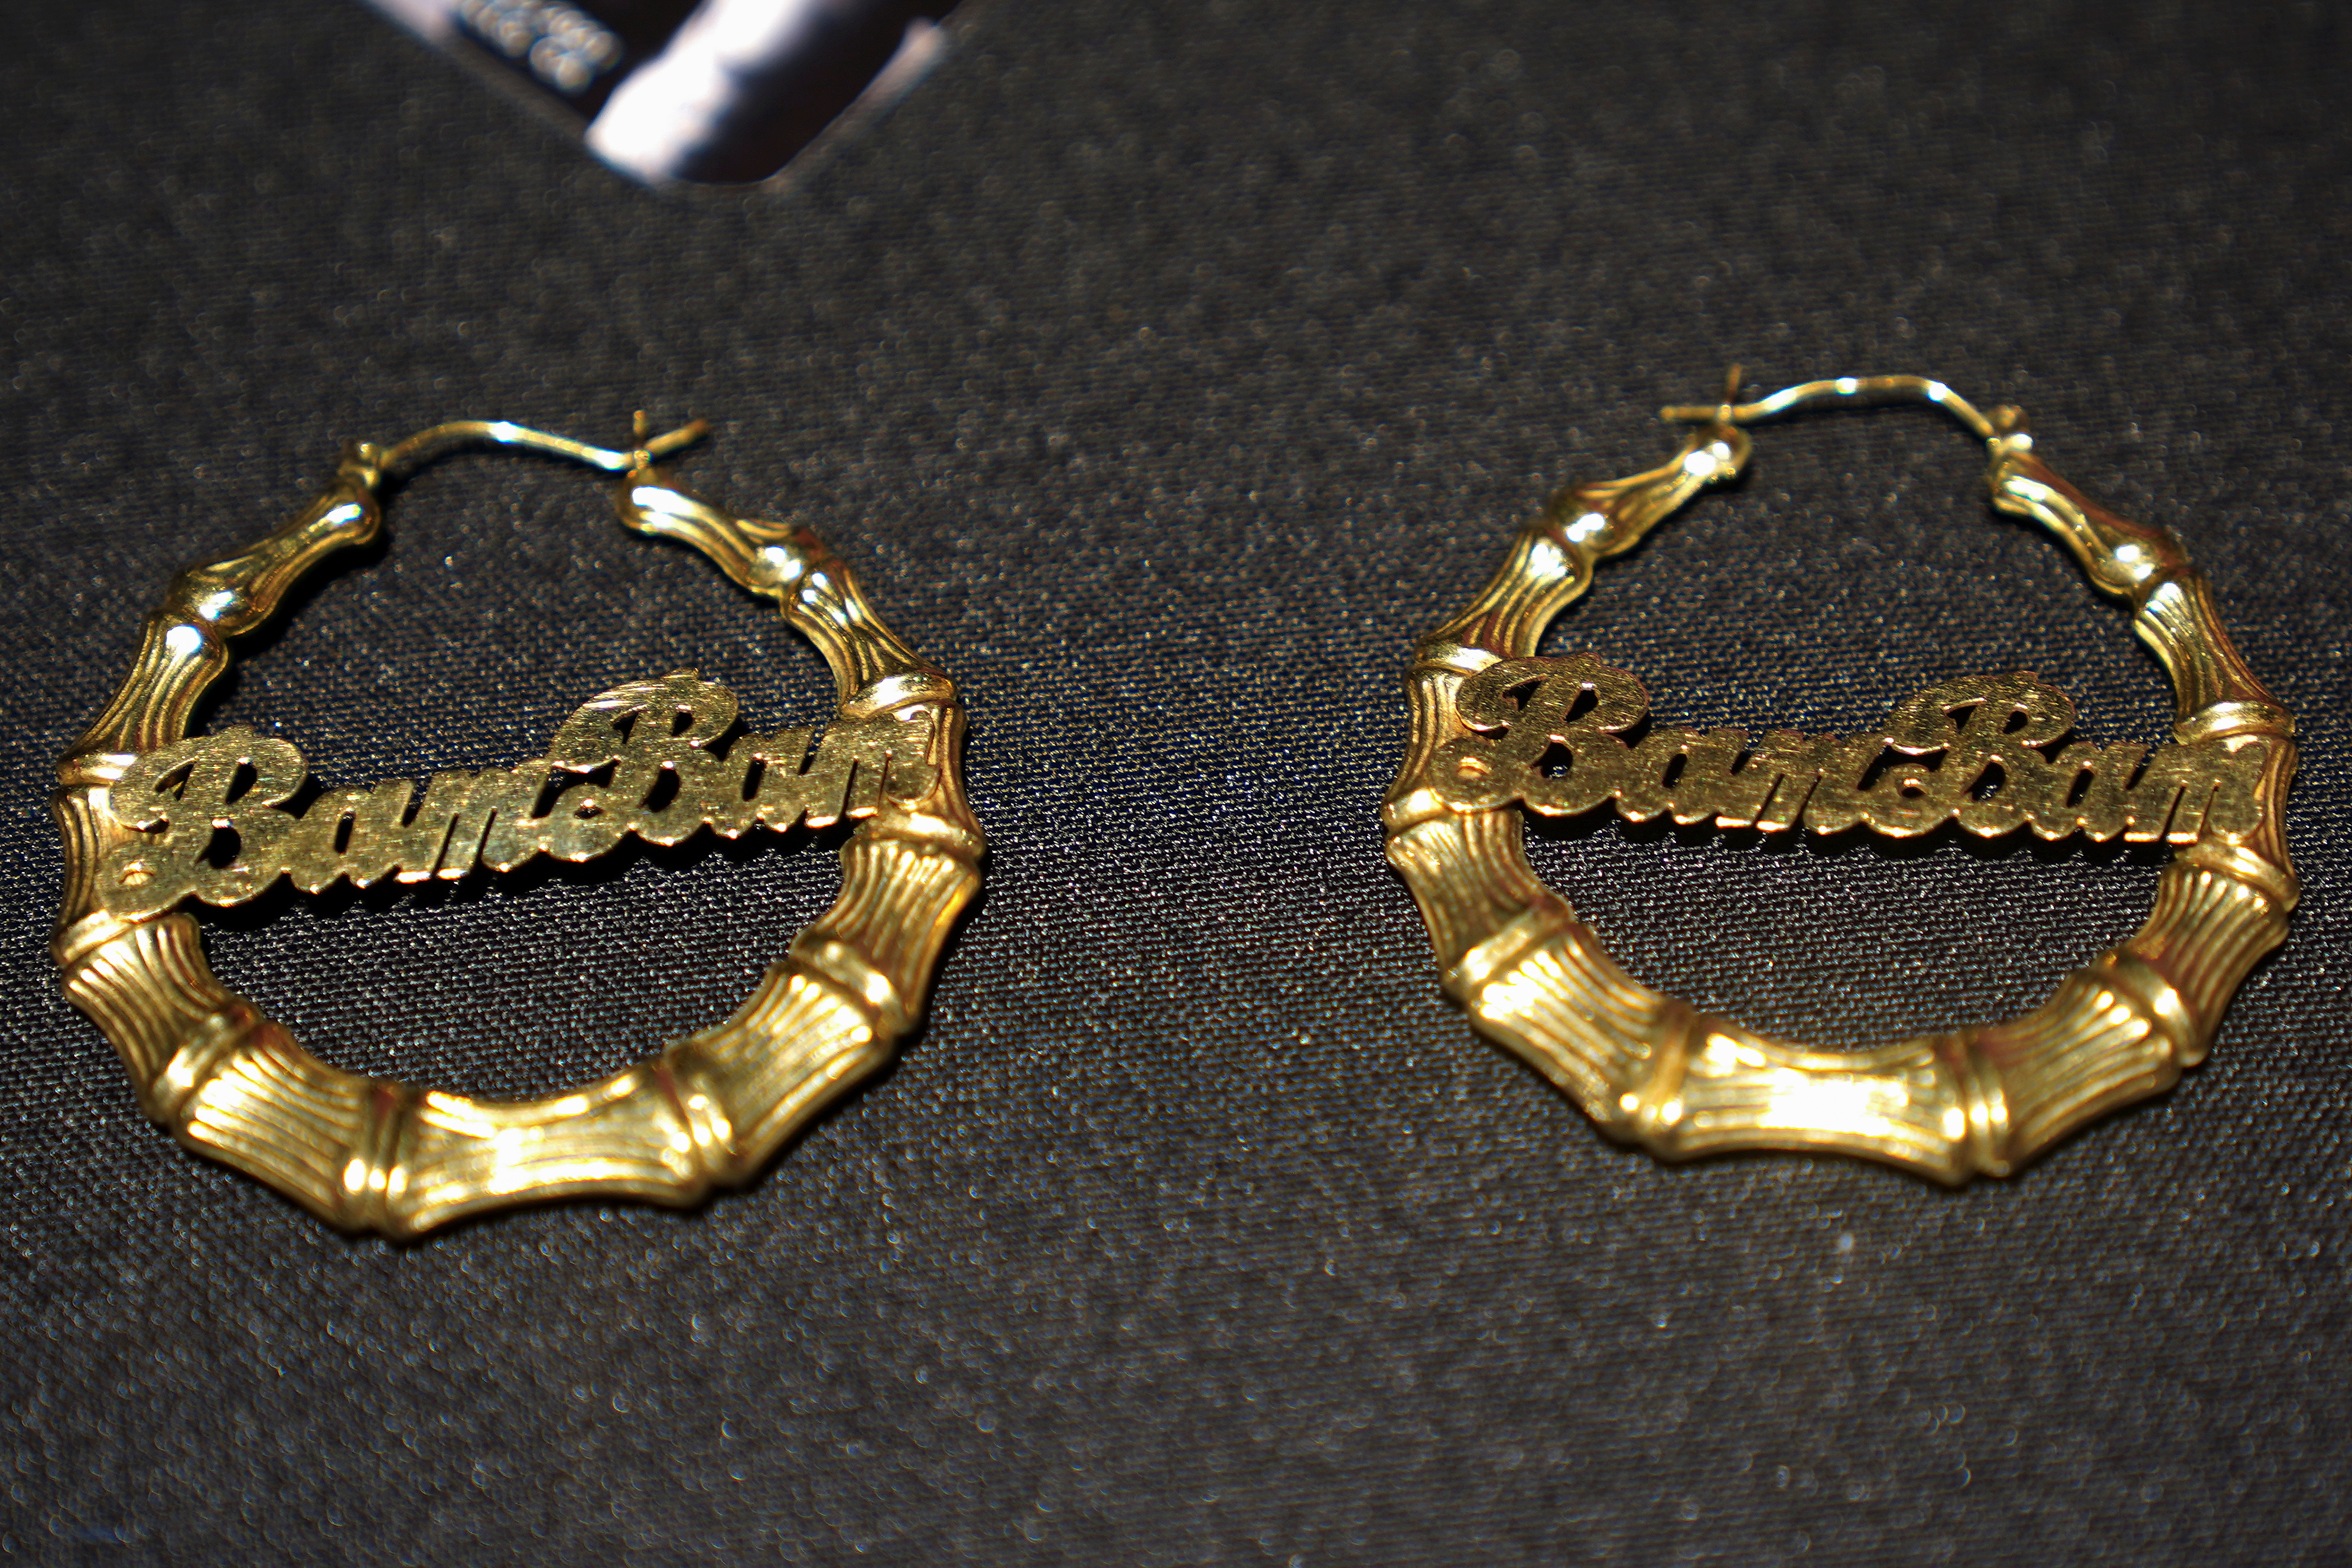 A pair of earrings worn by Amy Winehouse are pictured at a preview for an auction of her personal items on the tenth anniversary of her death in the Manhattan borough of New York City, New York, U.S., October 11, 2021.  REUTERS/Carlo Allegri